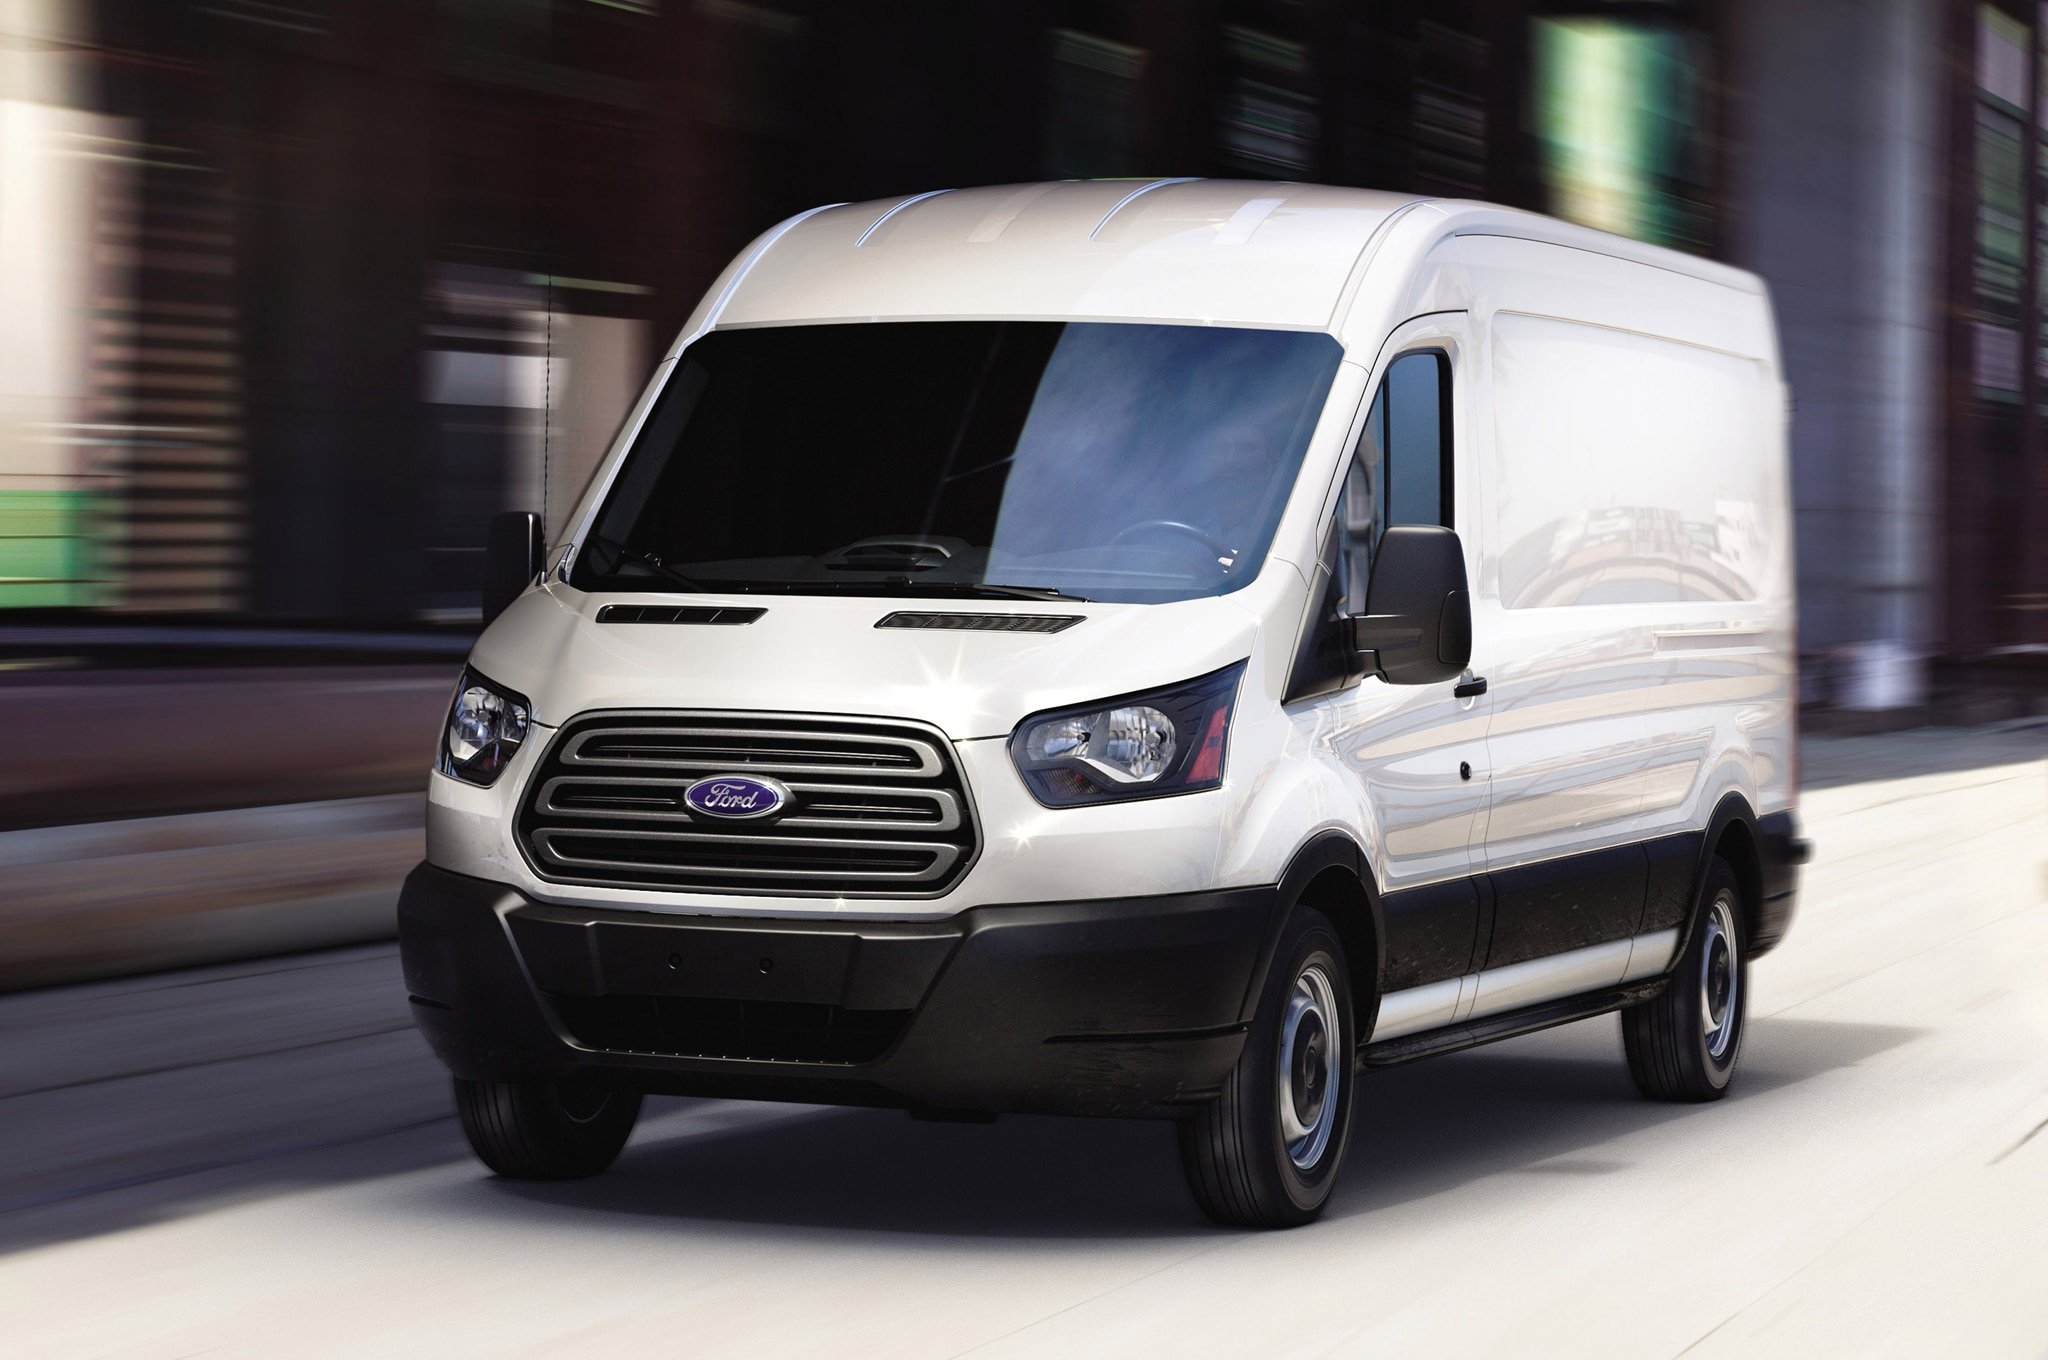 2015 Ford Transit Cargo Van Review